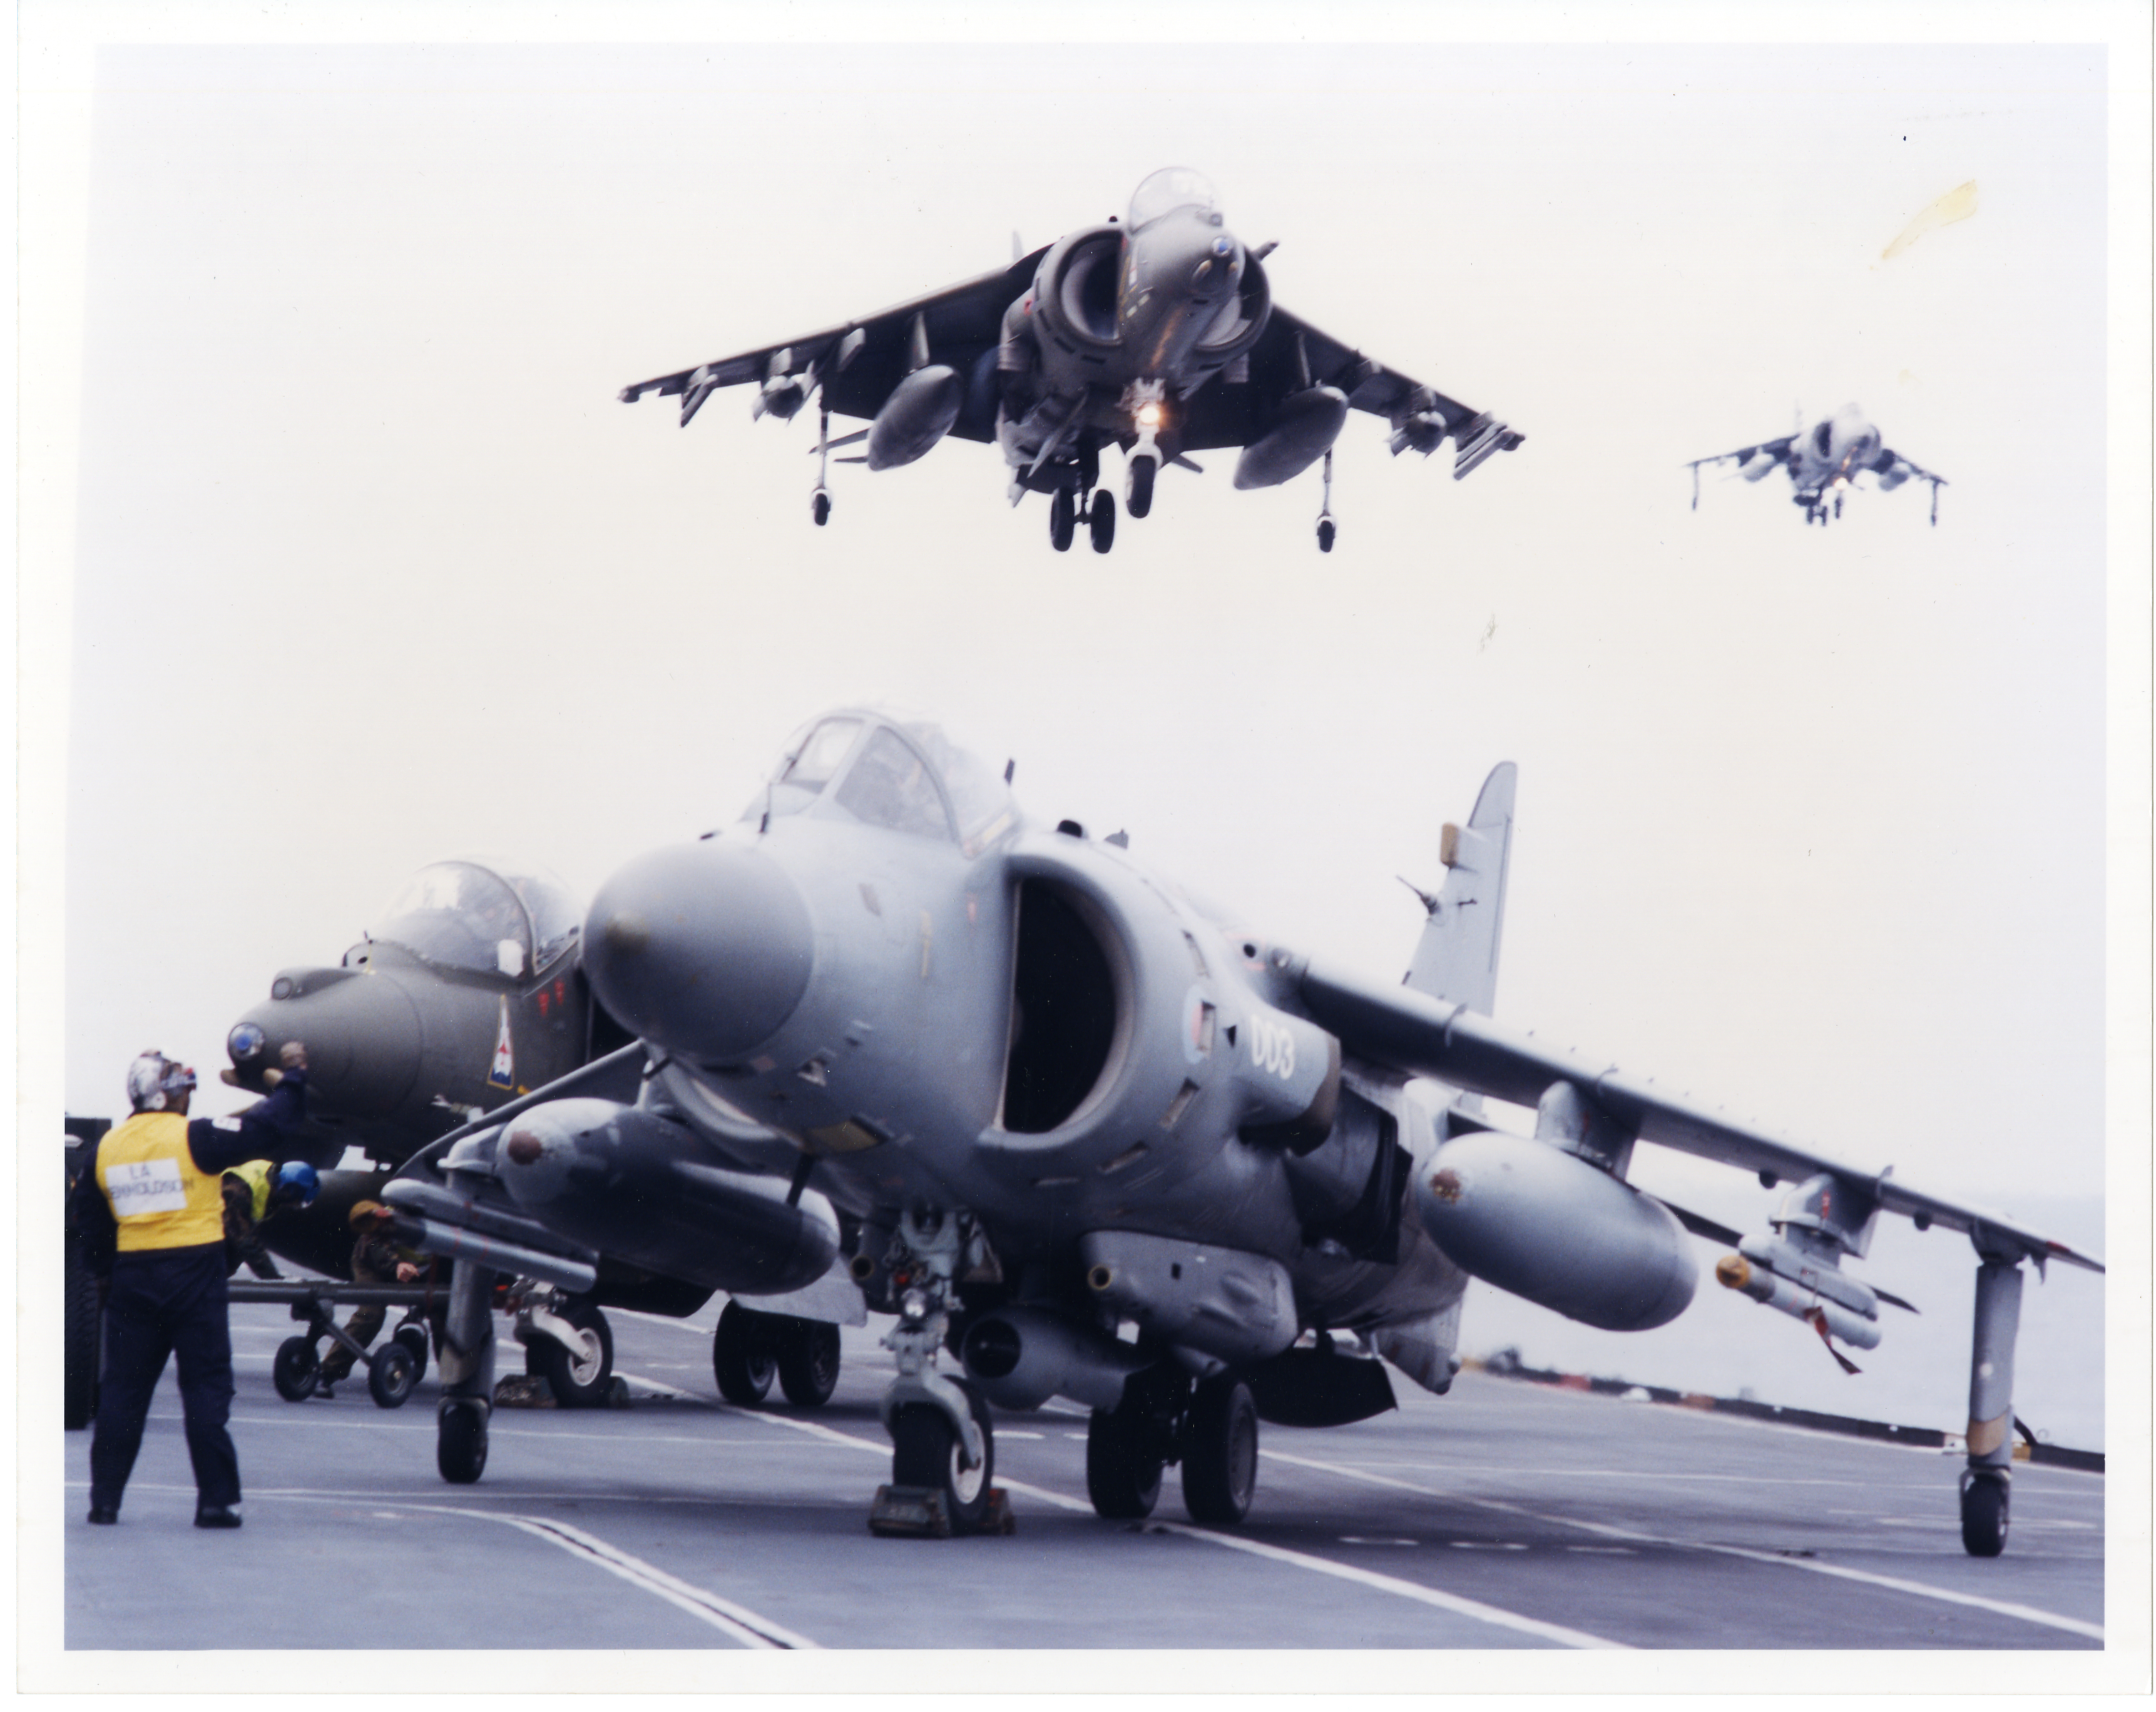 96-3-8-Harriers on deck